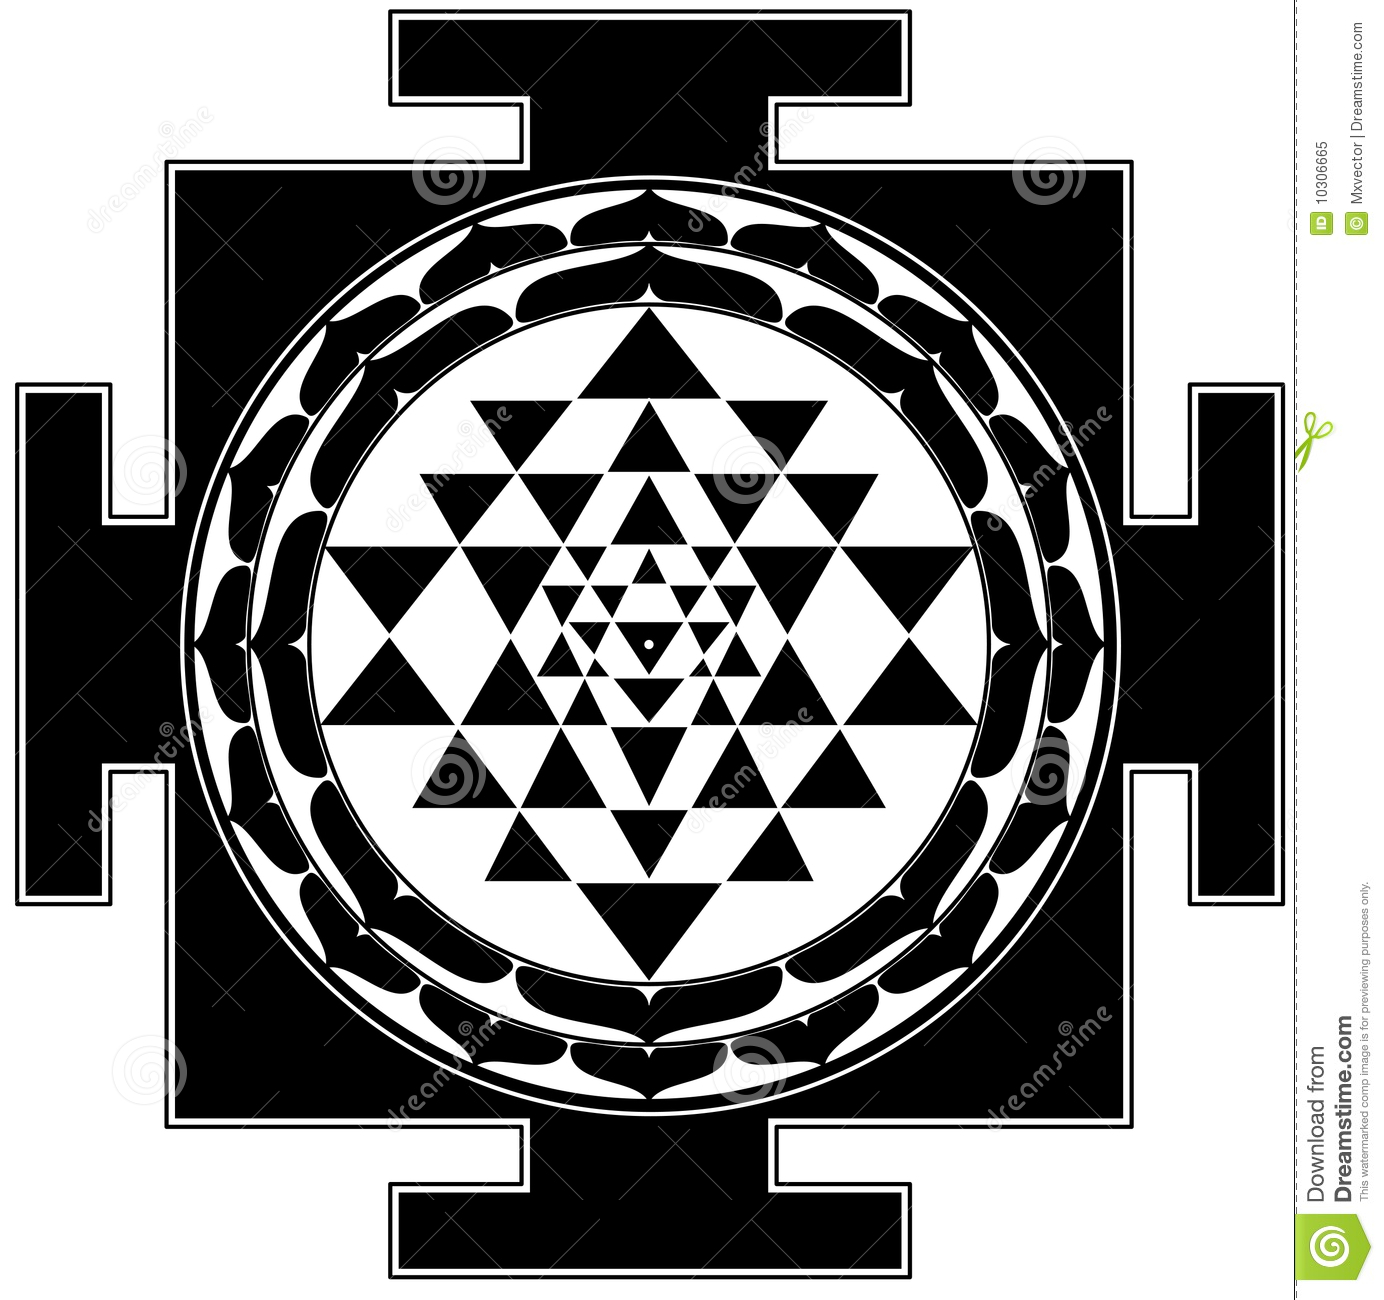 Wallpaper of shri yantra